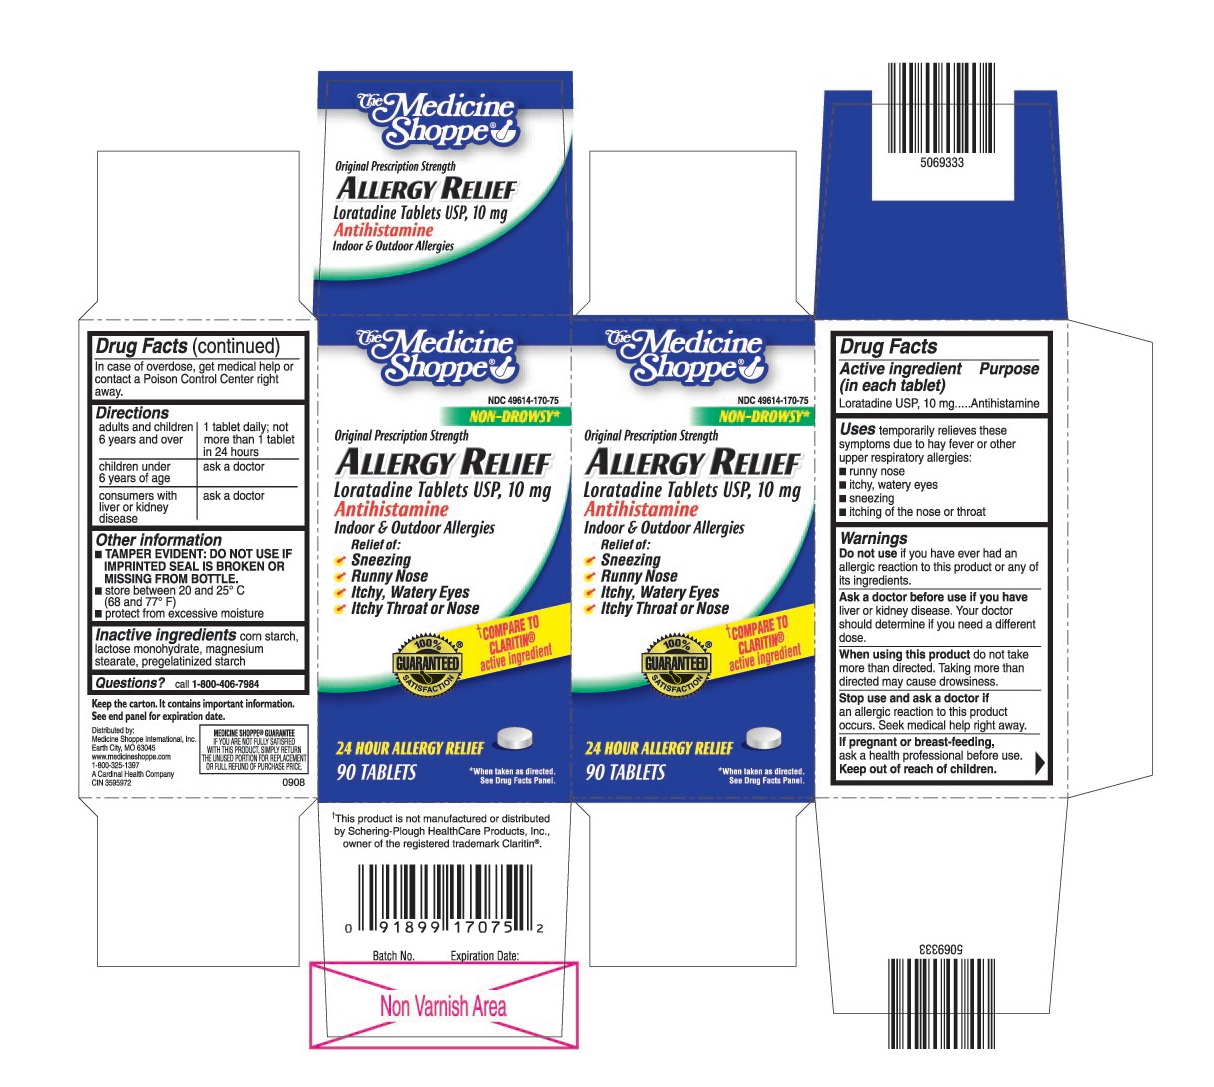 This is the 90 count bottle carton label for Loratadine Medicine Shoppe.